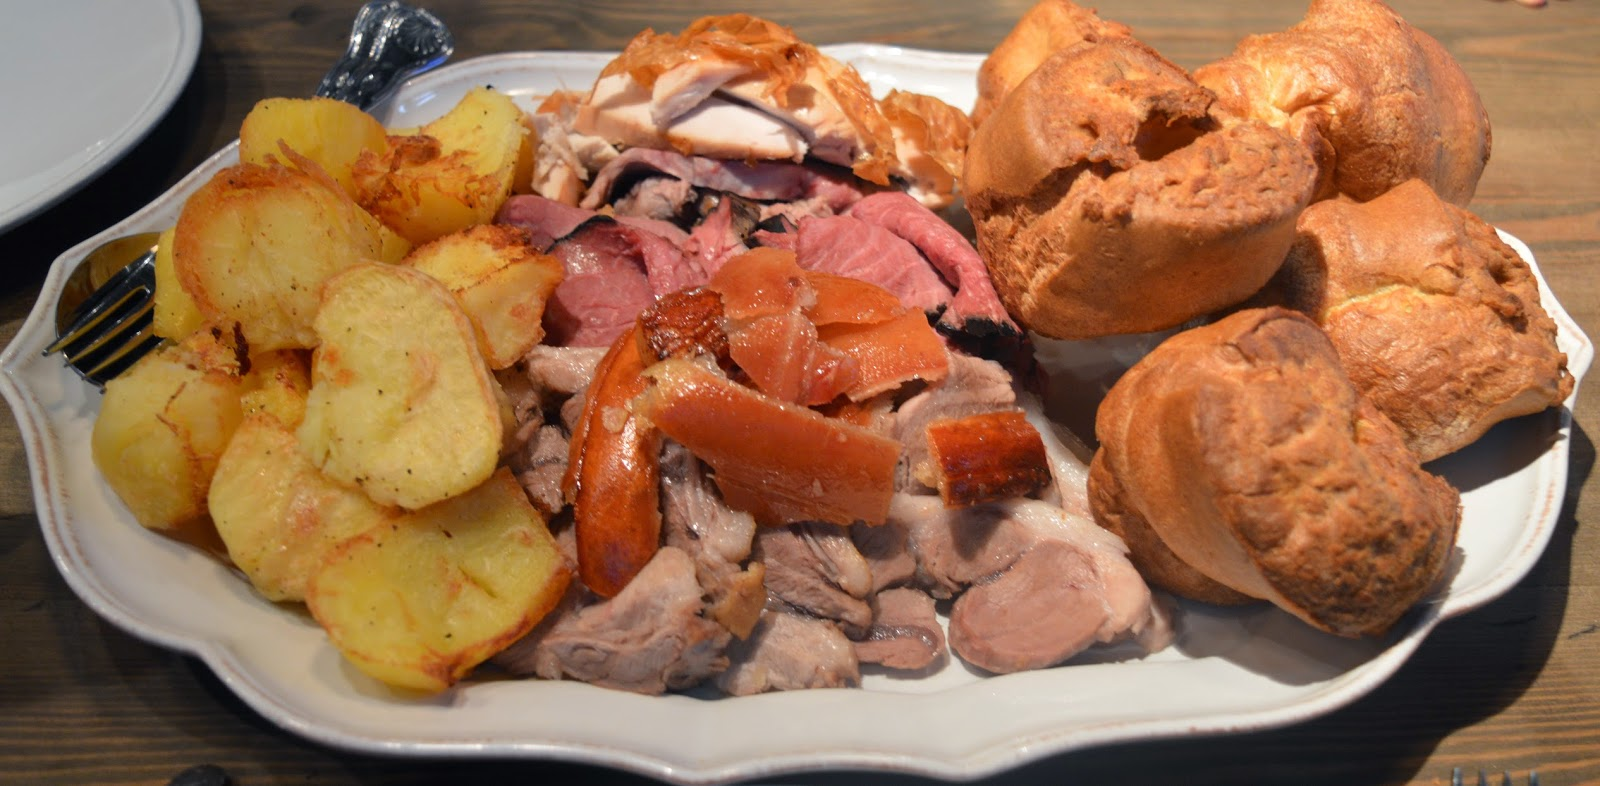 Our Guide to the Best Family Friendly Sunday Lunches in the North East  - Sunday lunch platter, The Fox Hole Pub Piercebridge